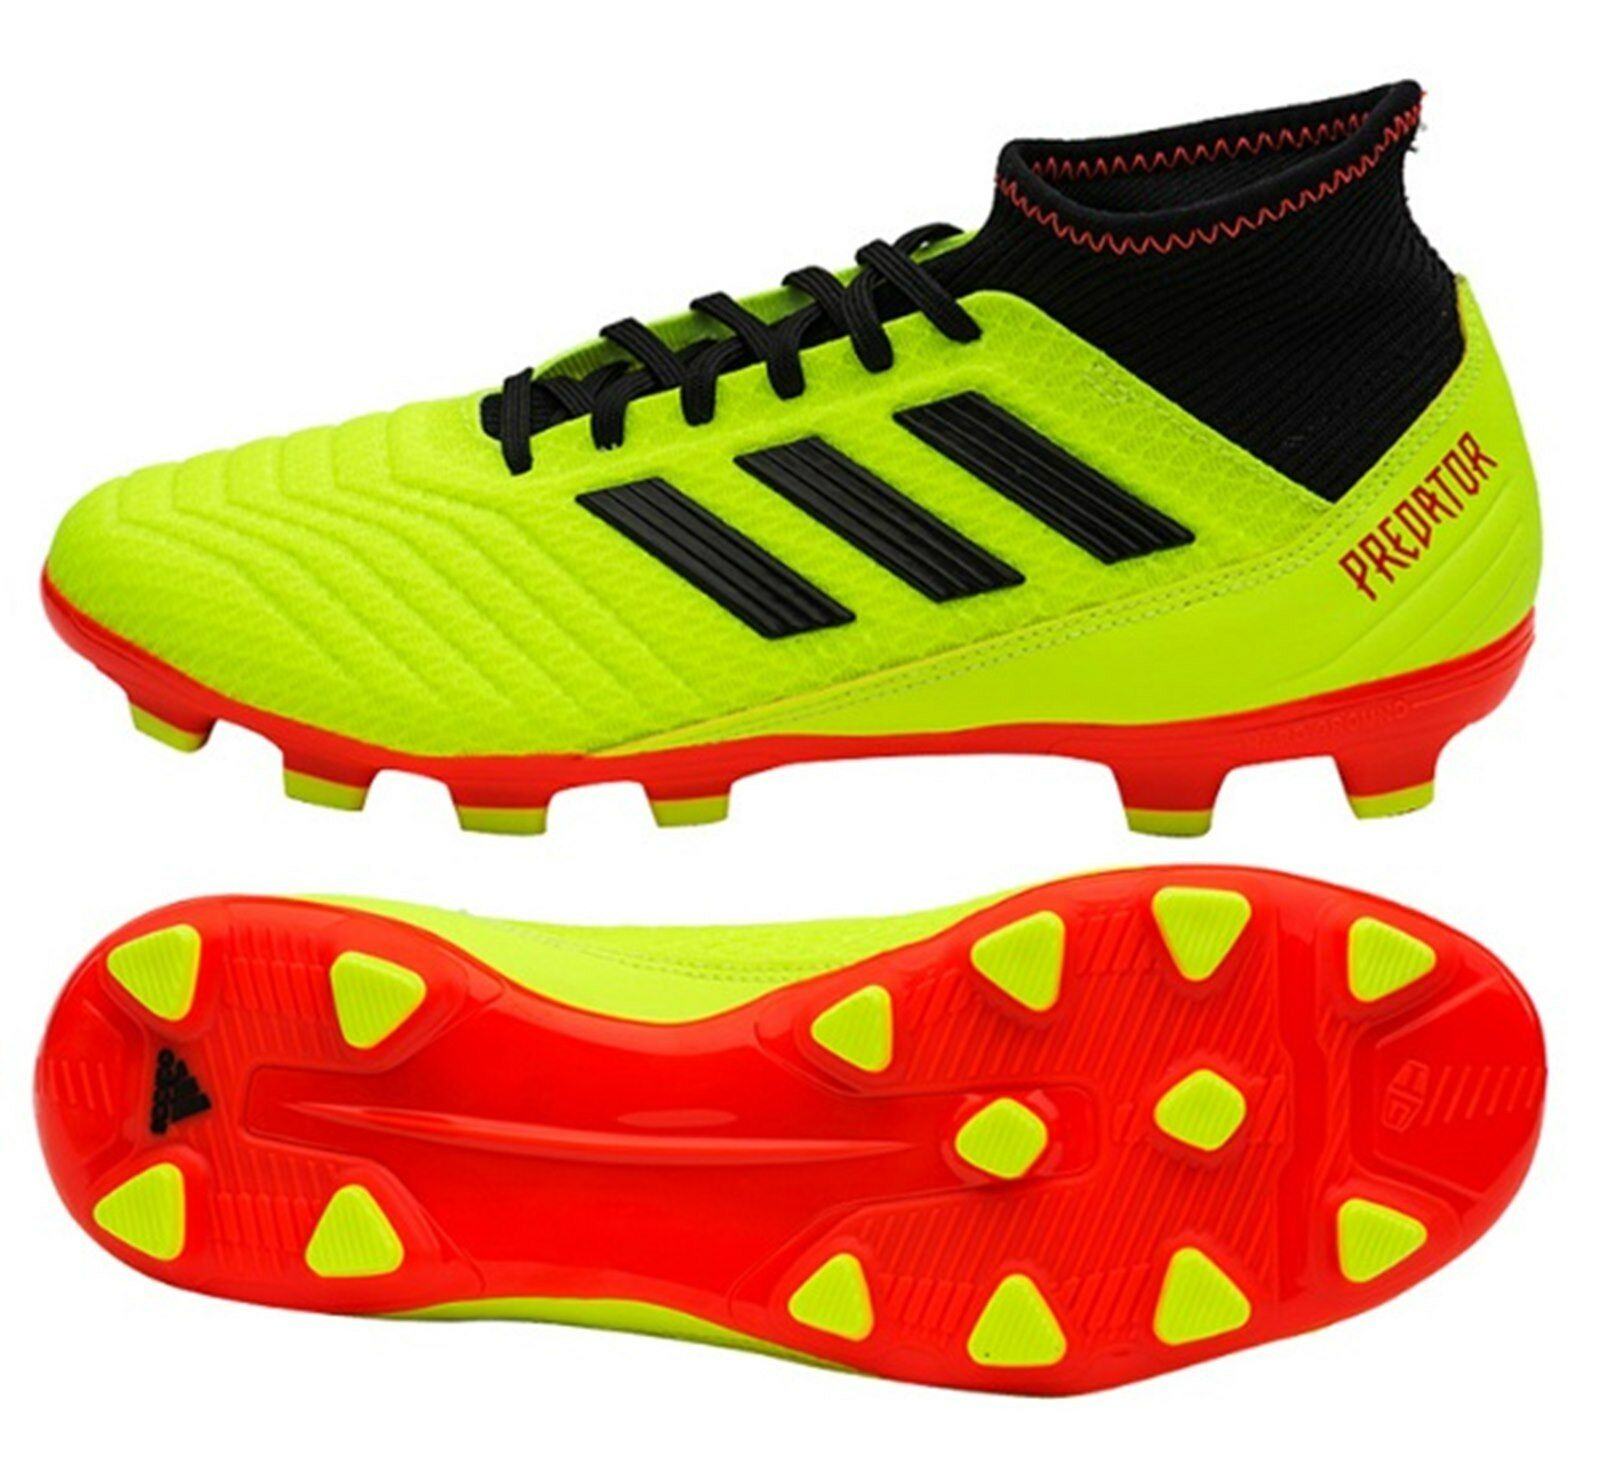 Adidas Hommes Prougeator Tango 18.3 HG Cleats Lime Soccer Football chaussures Spike BB6941